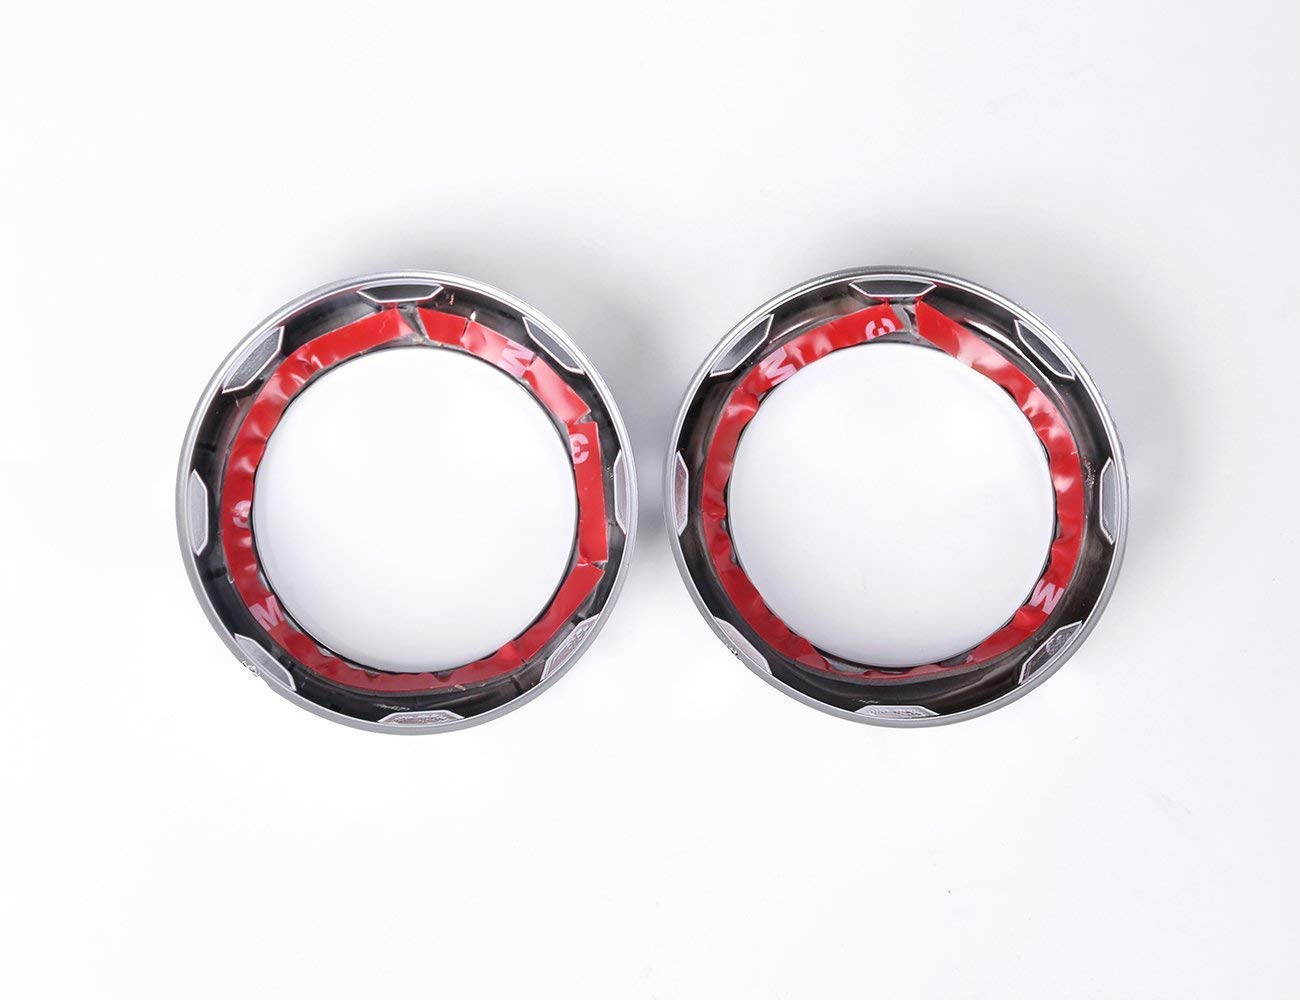 TongSheng ABS Chrome Car Rear Air Outlet Vent Ring Decoration Sticker Frame Trim Cover for Land Rover Discovery 4 2009-2016 for Land Rover Discovery 3 for Range Rover Sport 2005-2013